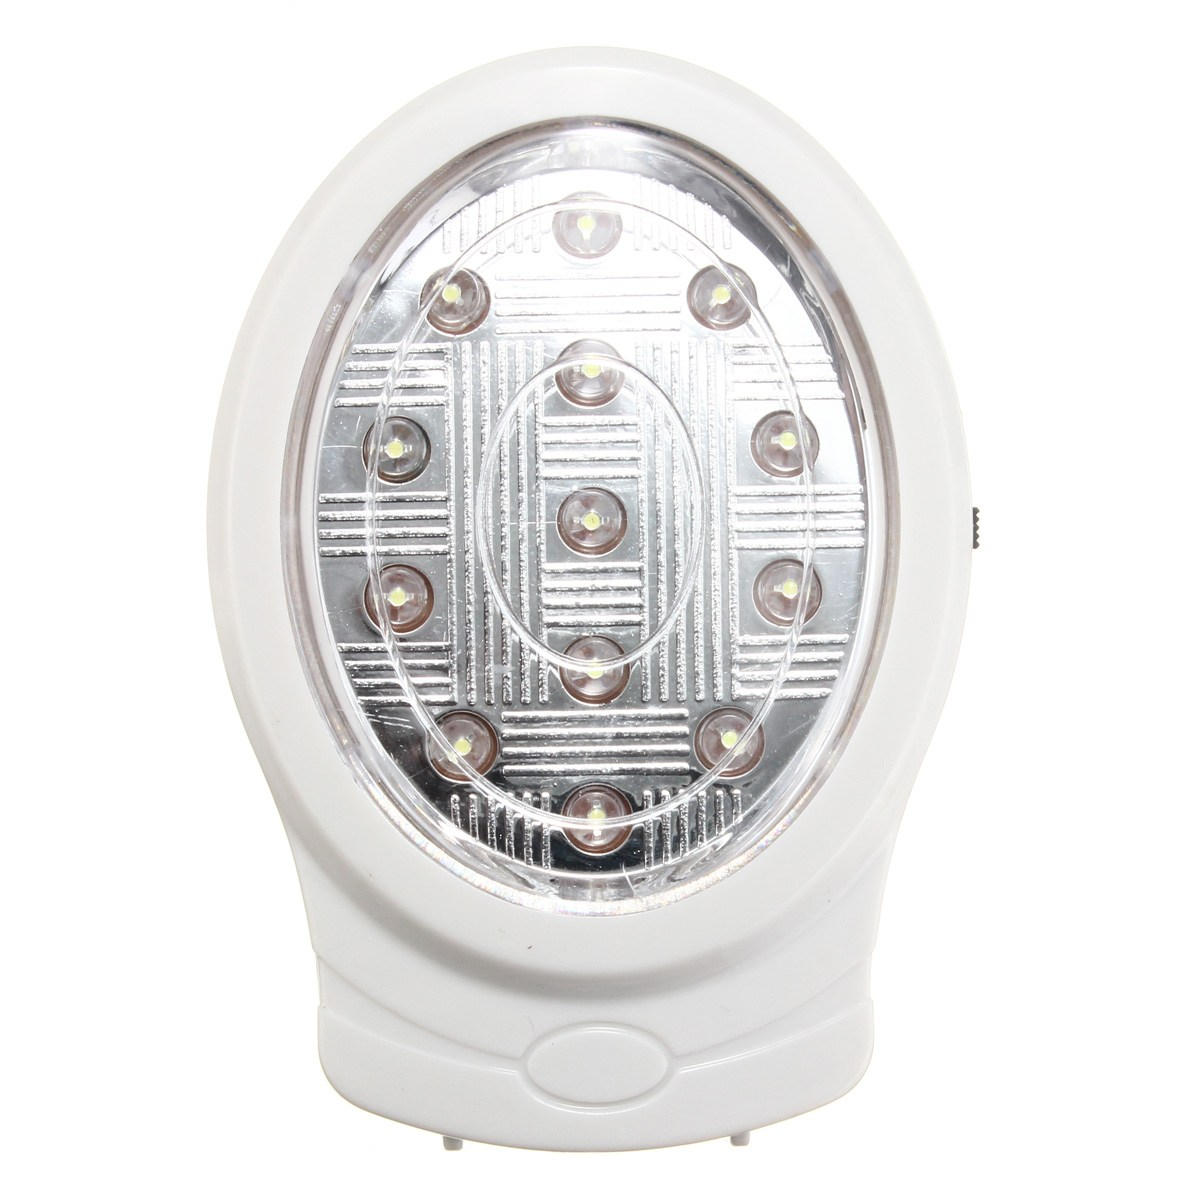 2W 13 LED Rechargeable Emergency Light Automatic Power Failure Outage Lighting Lamp Bulb